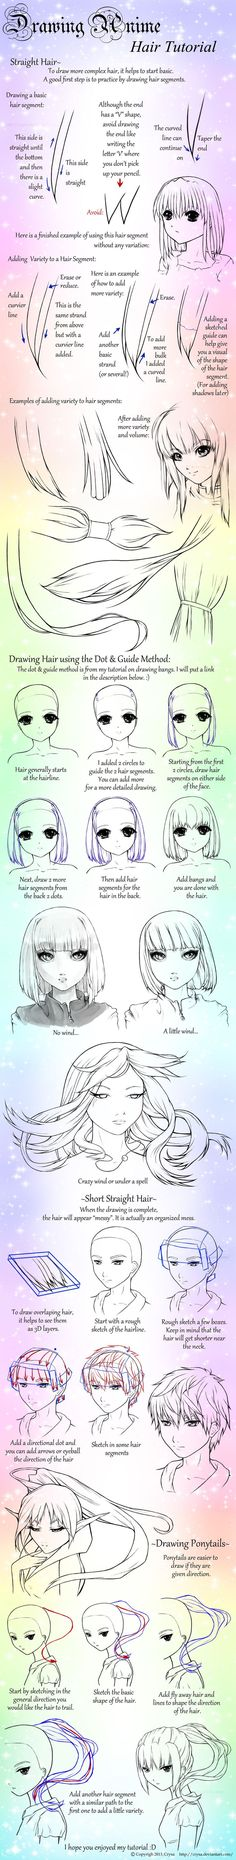 Drawing Anime: Straight Hair and Ponytails by Crysa on DeviantArt: